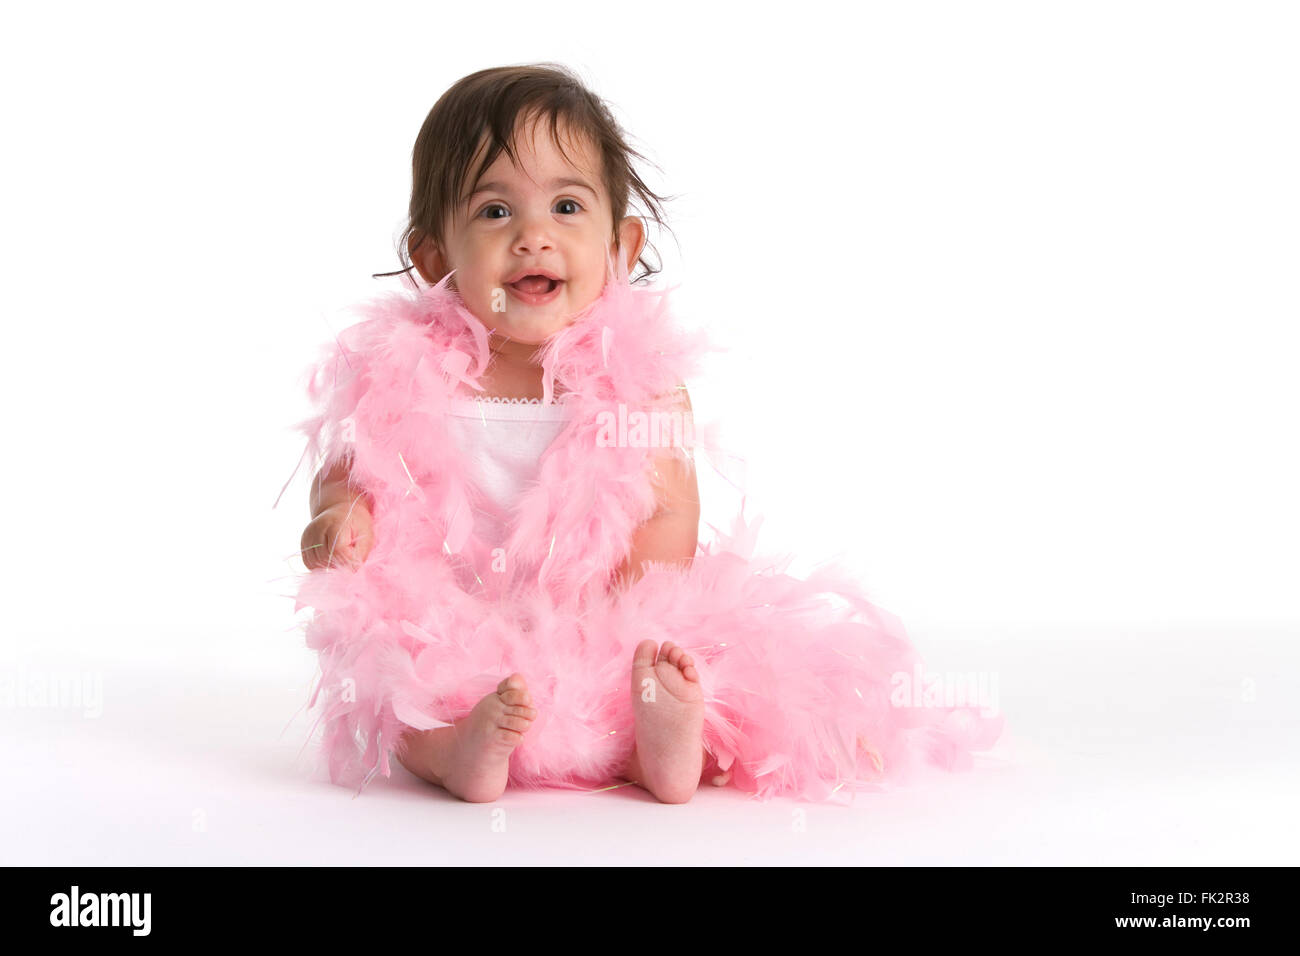 Baby Girl Sitting On The Floor Dressed In Pink Feathers Like A Diva on white background - Stock Image